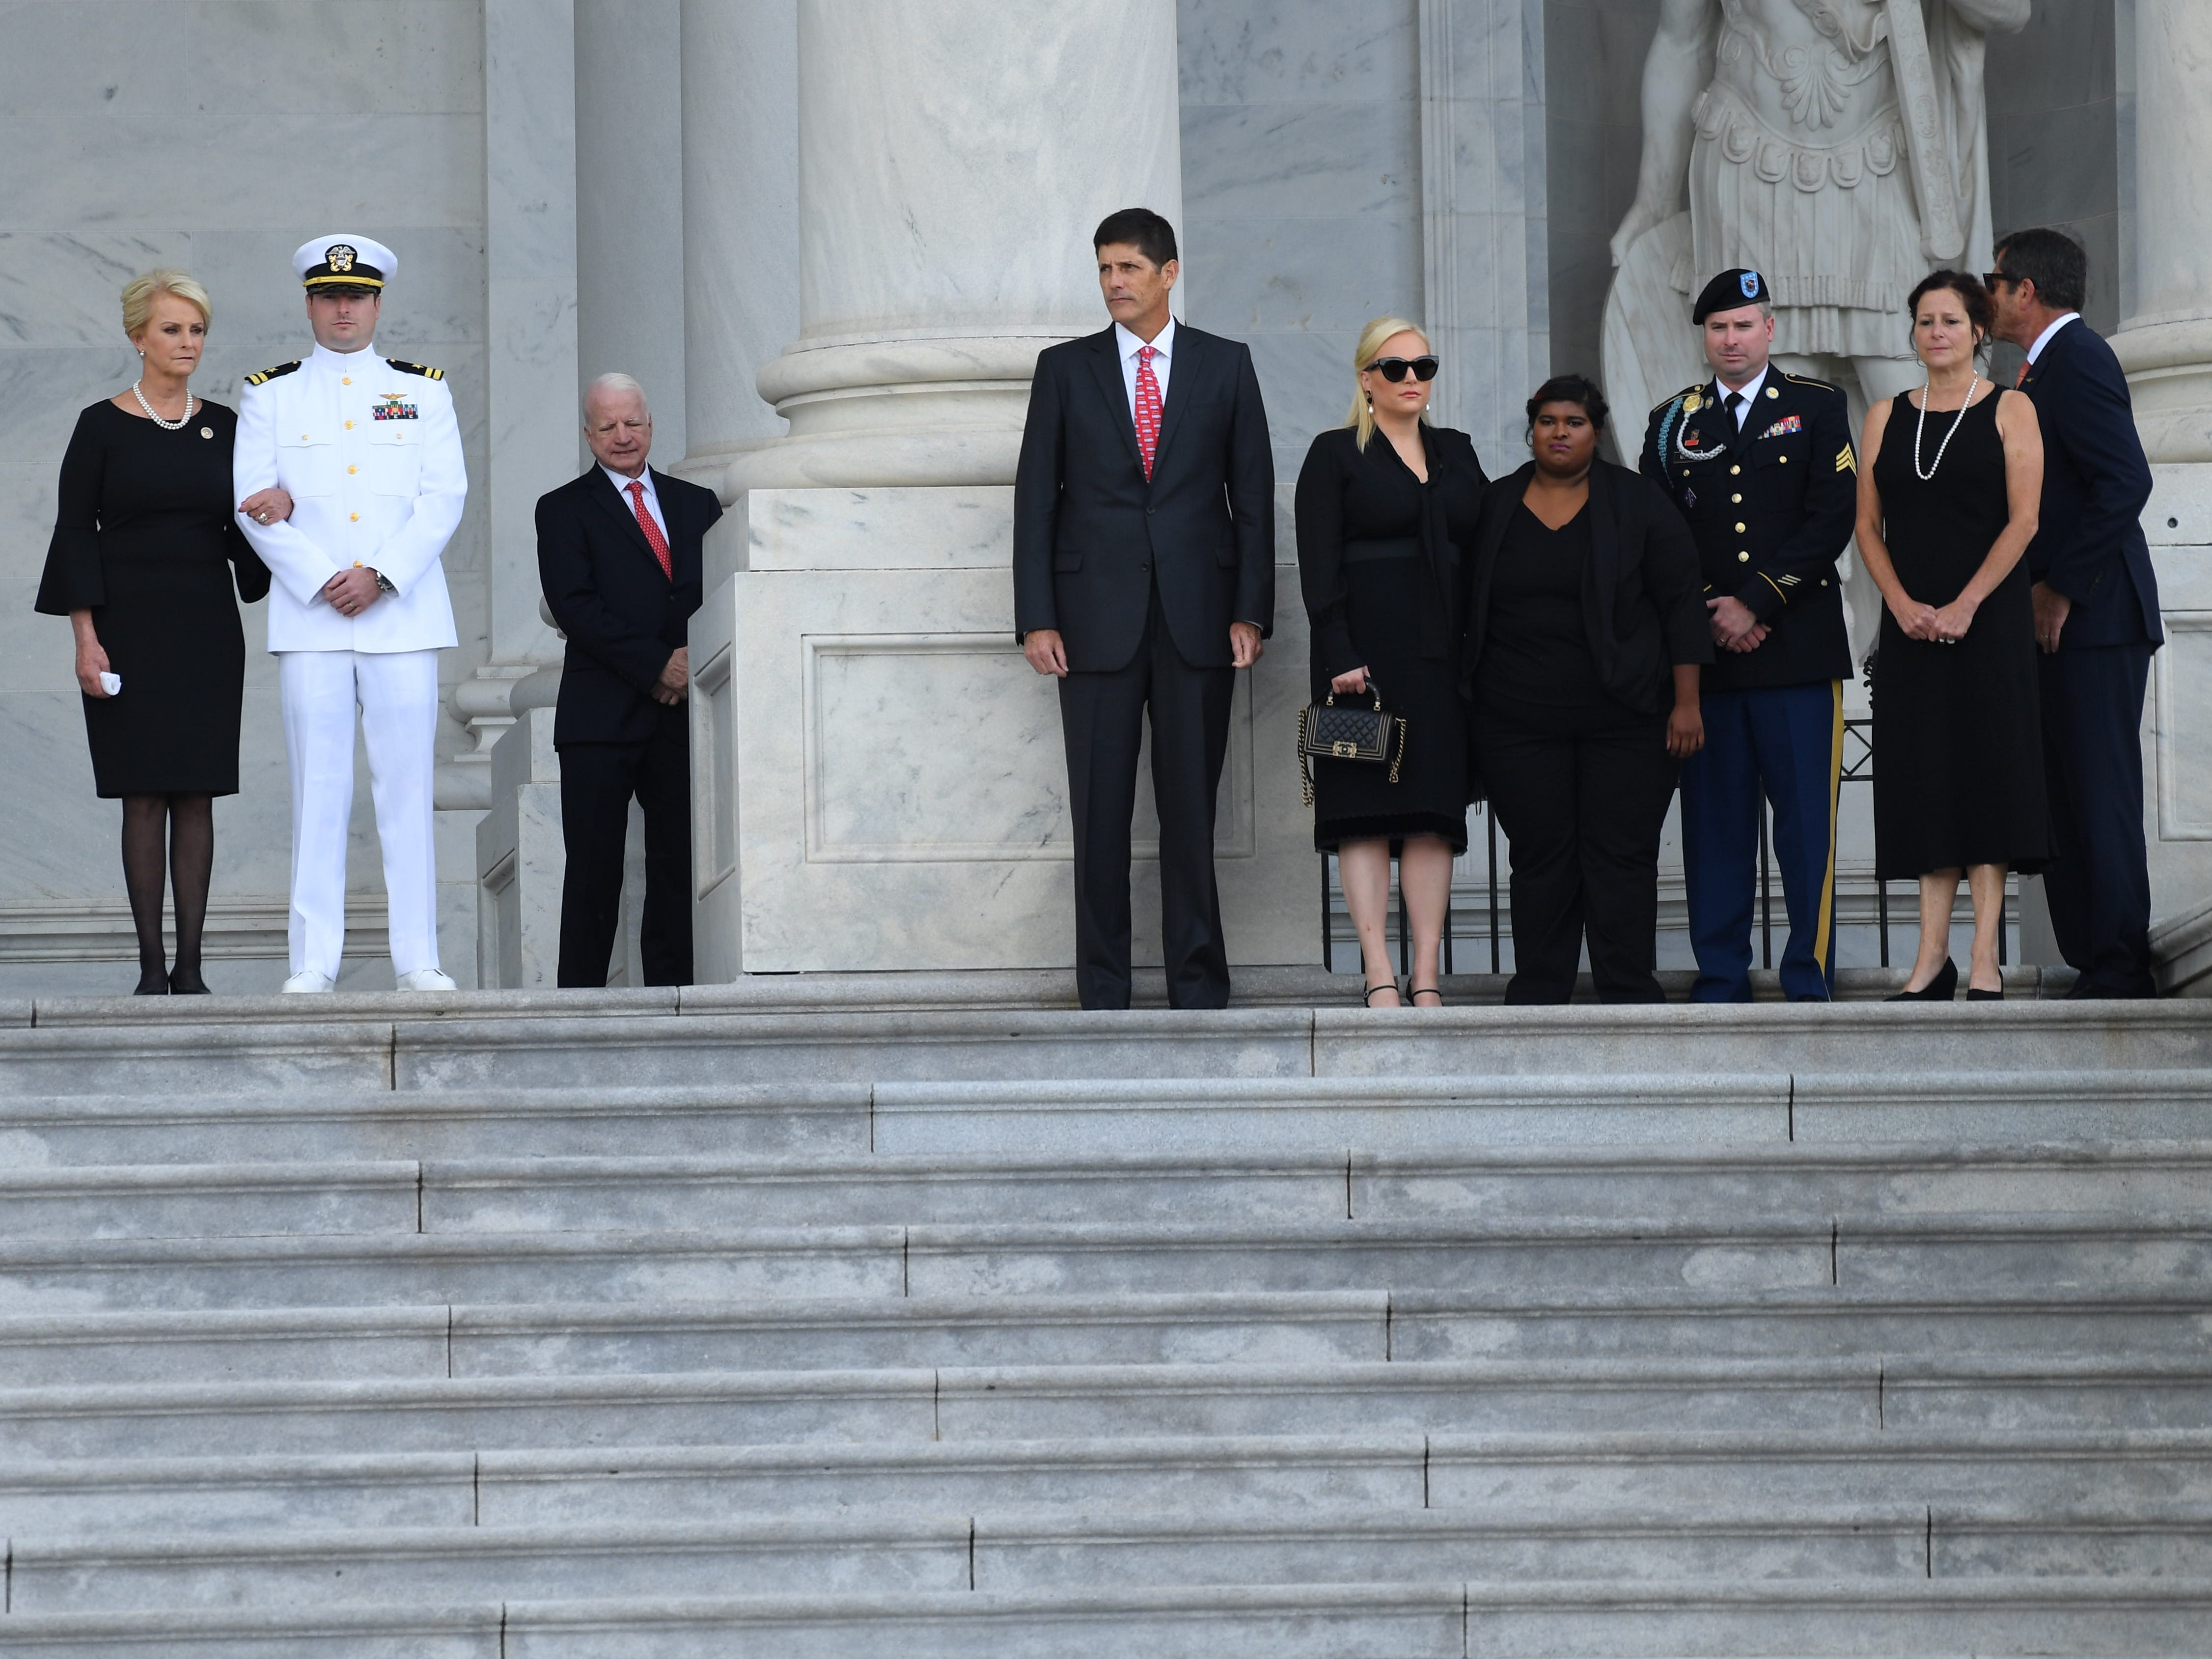 8/31/18 10:43:21 AM -- Washington, DC, U.S.A  -- The casket of John McCain arriving at the U.S. Capitol while the McCain family waits on Aug. 31, 2018 in Washington. Sen. McCain died on Aug. 25. --    Photo by Jack Gruber, USA TODAY Staff` ORG XMIT:  JG 137435 McCain U.S. Capi 8/31 (Via OlyDrop)